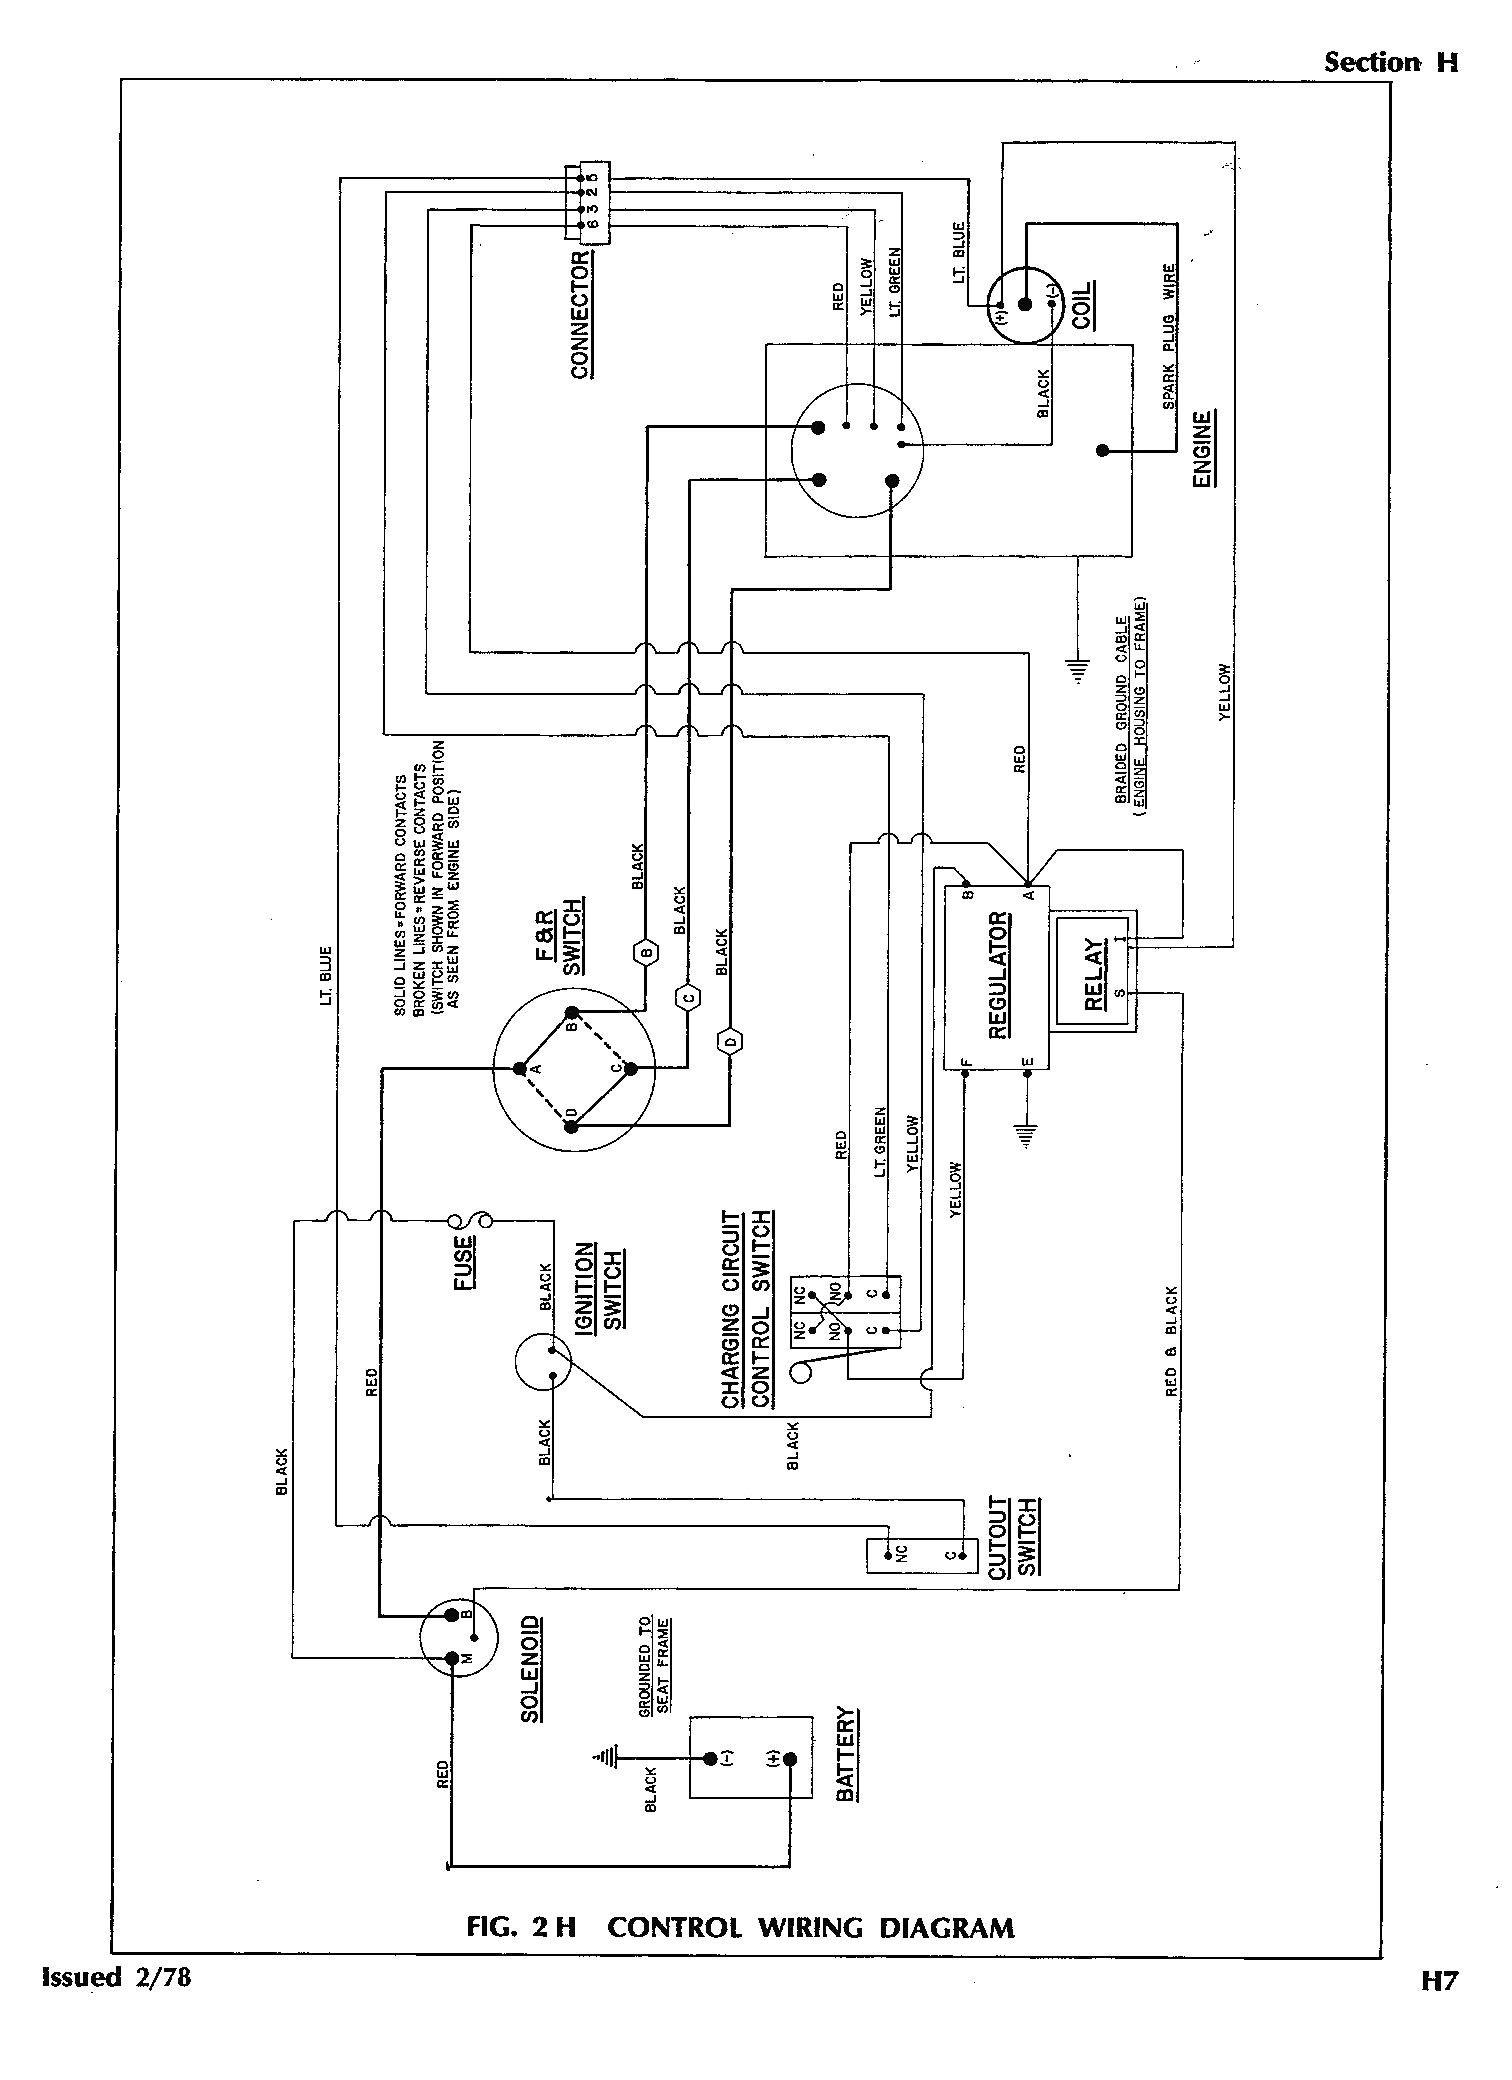 New Wiring Diagram For 2006 Club Car Precedent 48 Volt Diagram Diagramtemplate Diagramsample Gas Golf Carts Electric Golf Cart Club Car Golf Cart